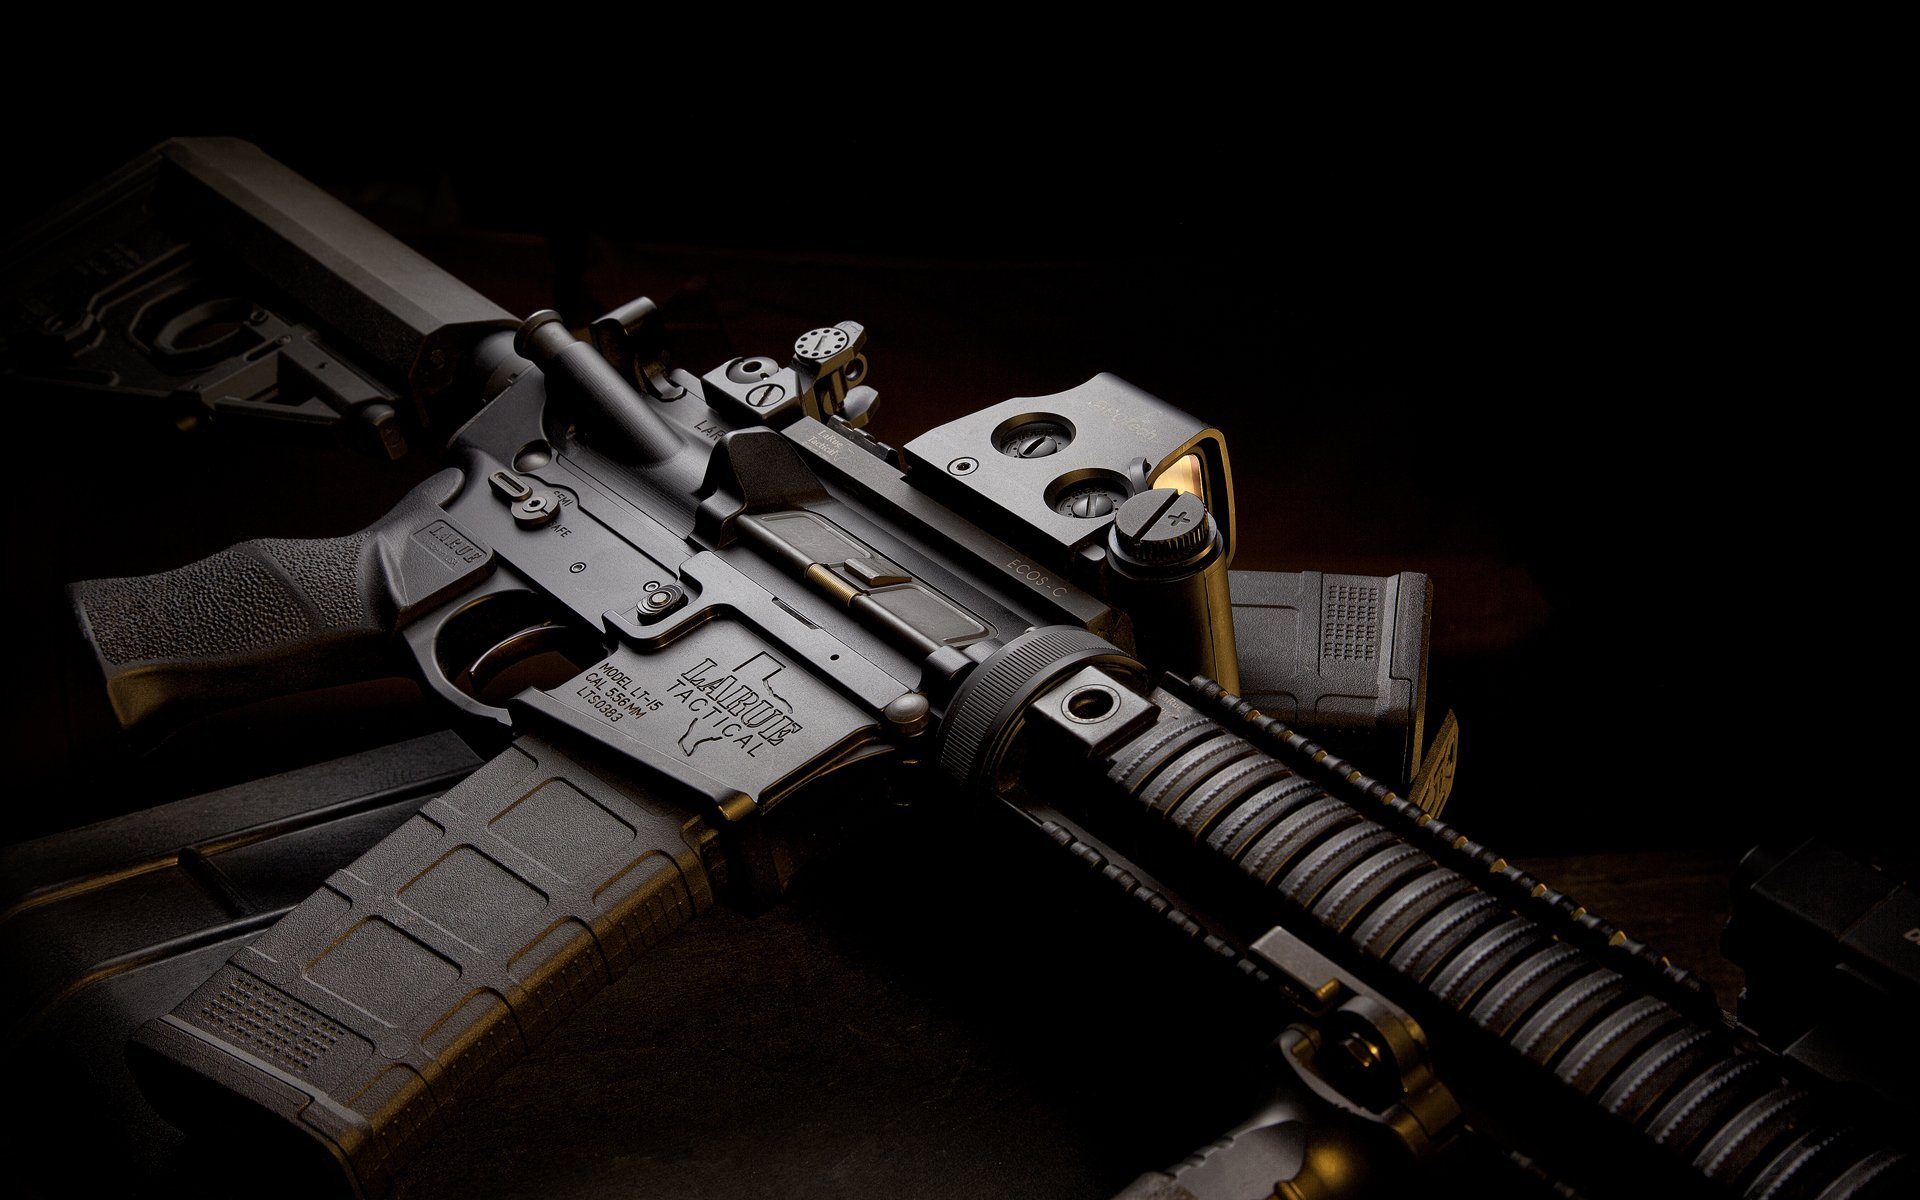 LaRue Assault Rifle Pics, Weapons Collection